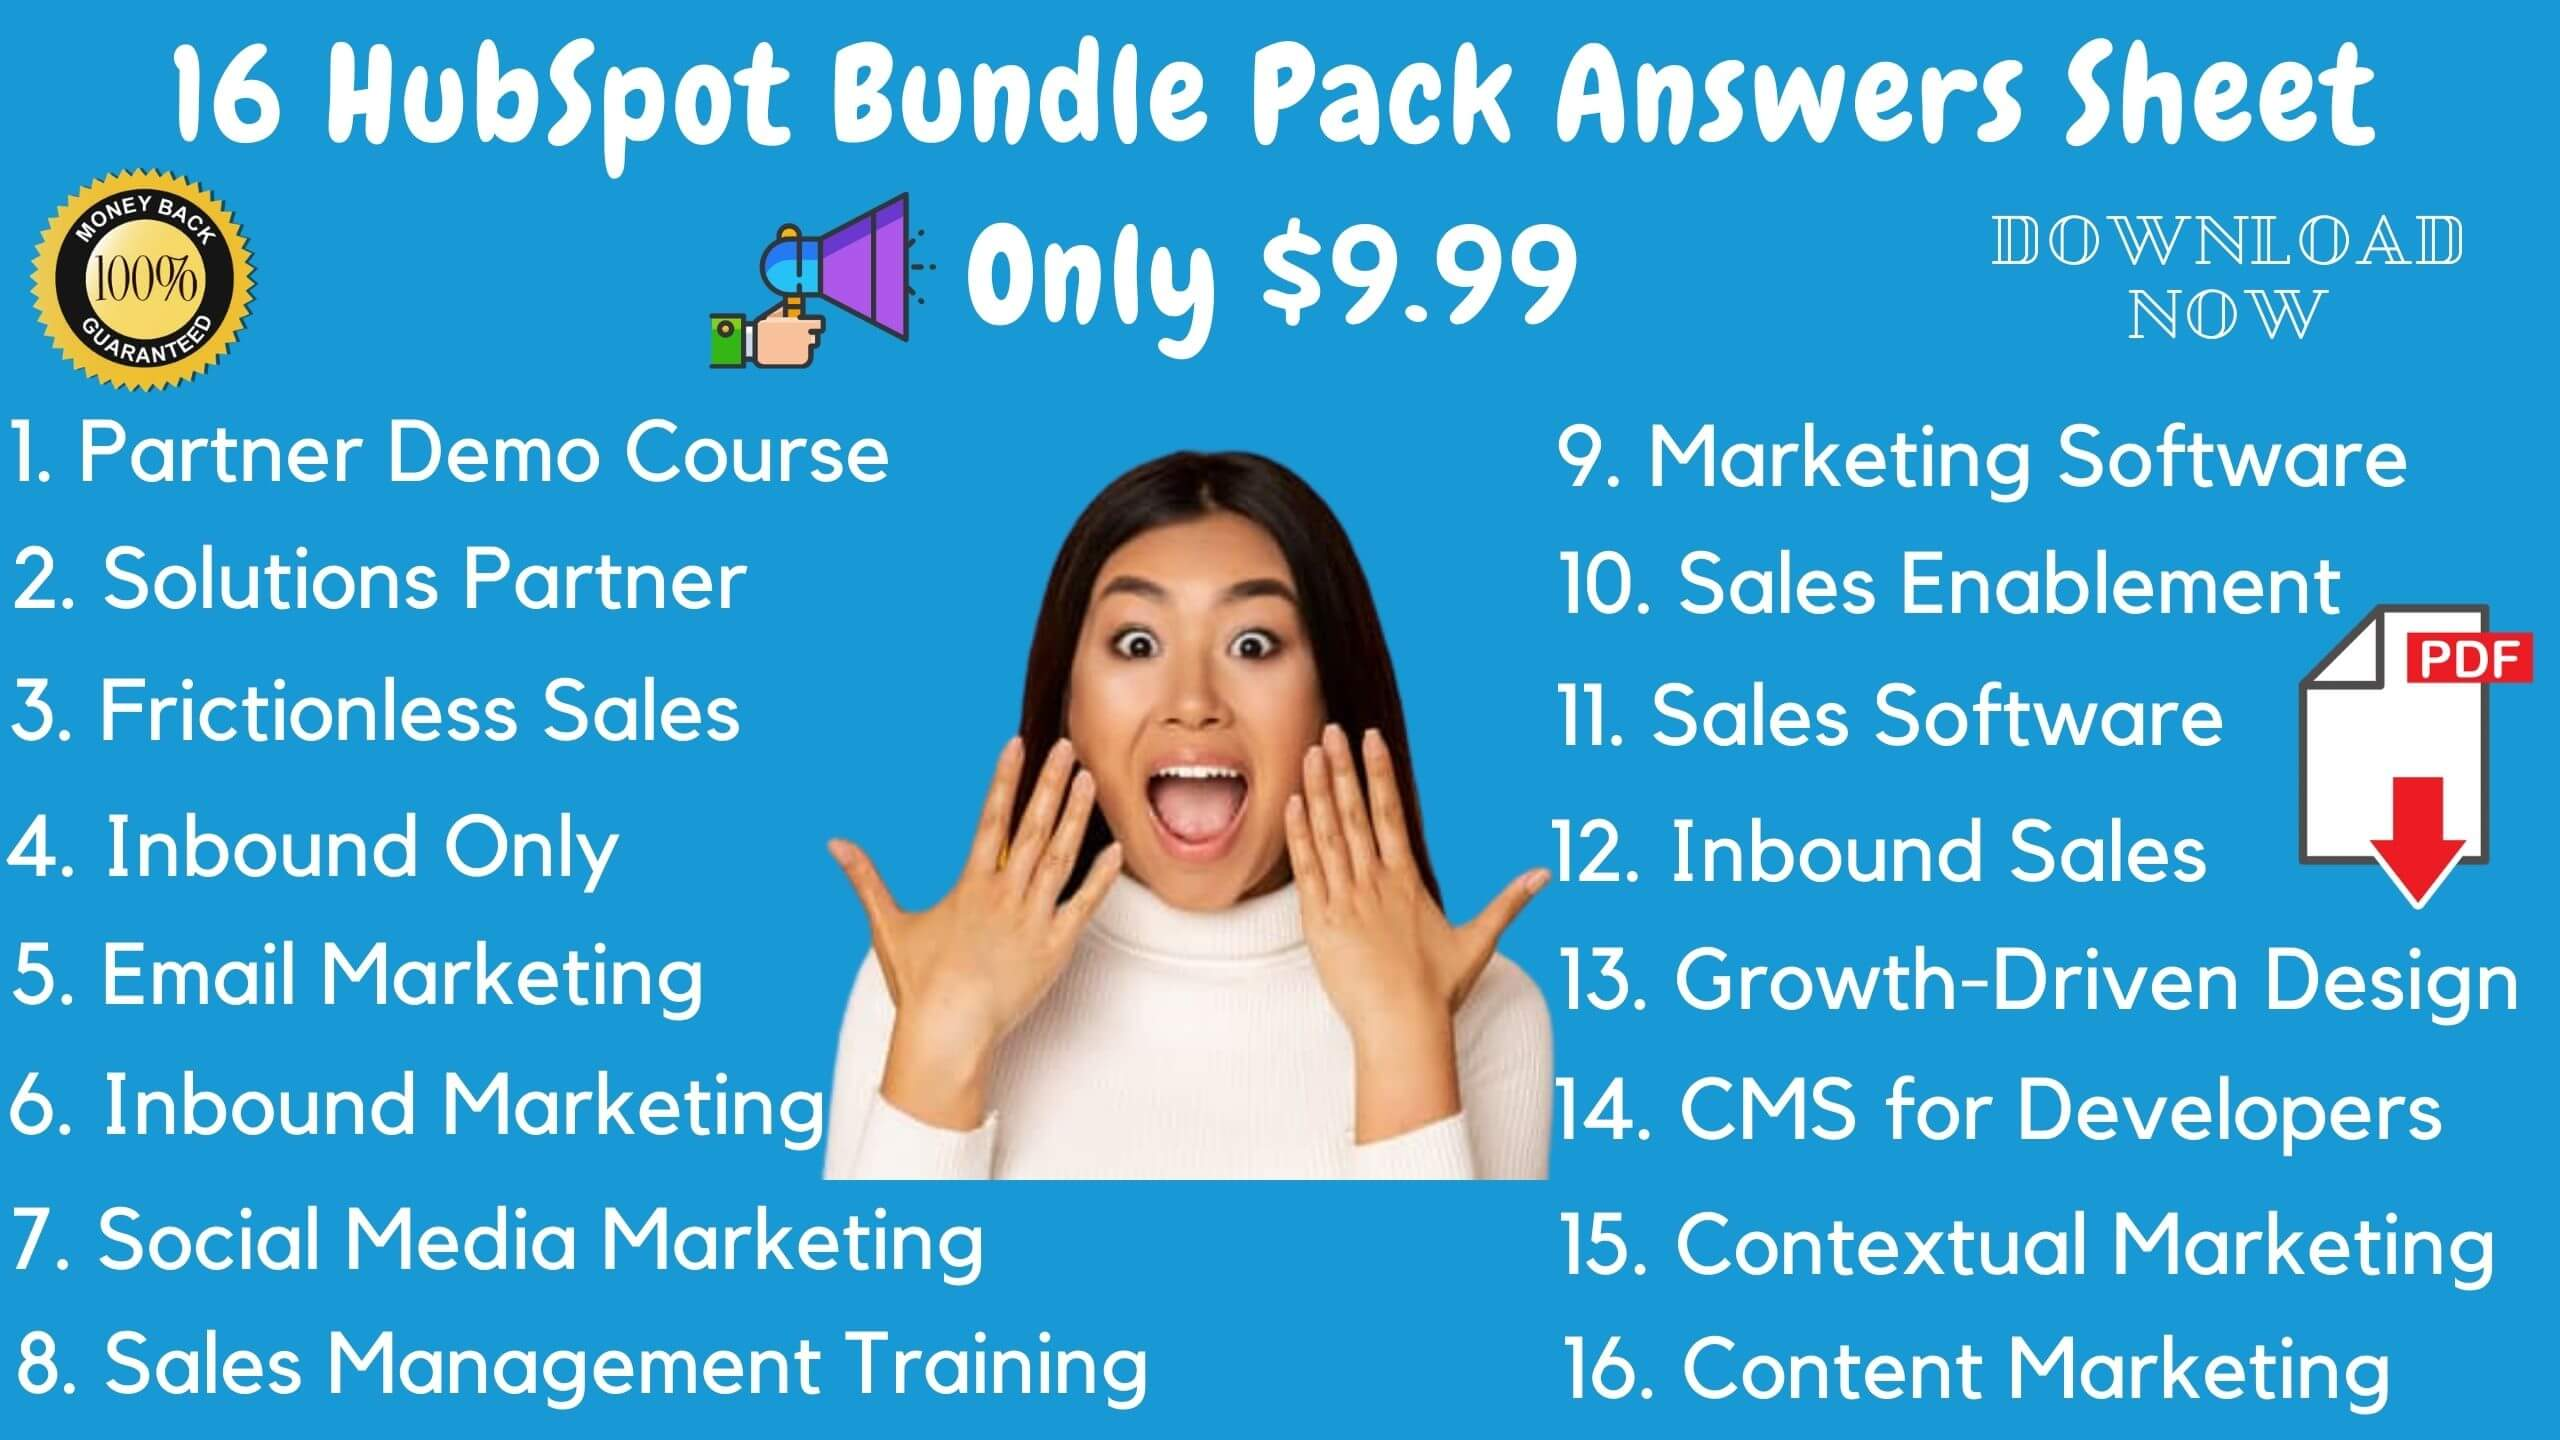 HubSpot Bundle Packs